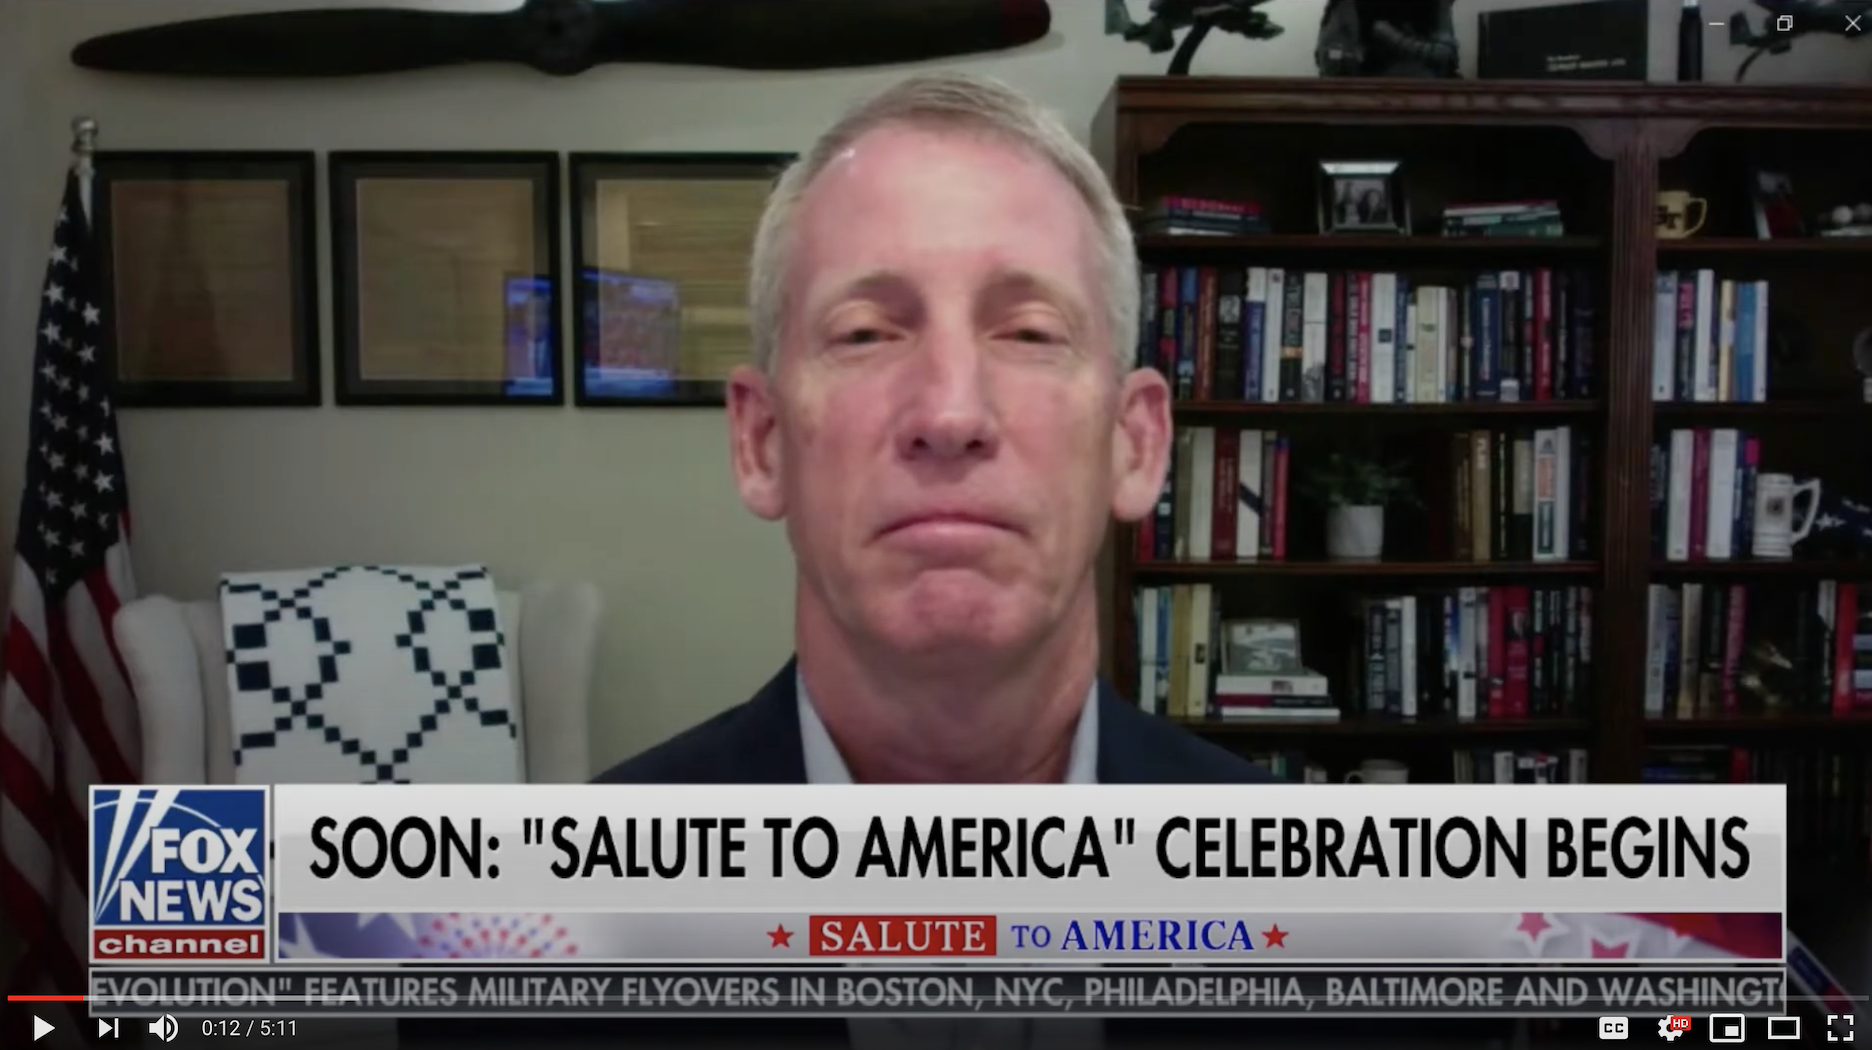 """I was honored to be on Fox News Channel with the Fox Report's Jon Scott and fellow guests Congressman Adam Kinzinger and Combat Veteran Joey Jones to celebrate America as part of Fox's coverage of President Trump's """"Salute to America"""" event at the White House. I spoke about American Exceptionalism and celebrating America's Armed Forces...."""